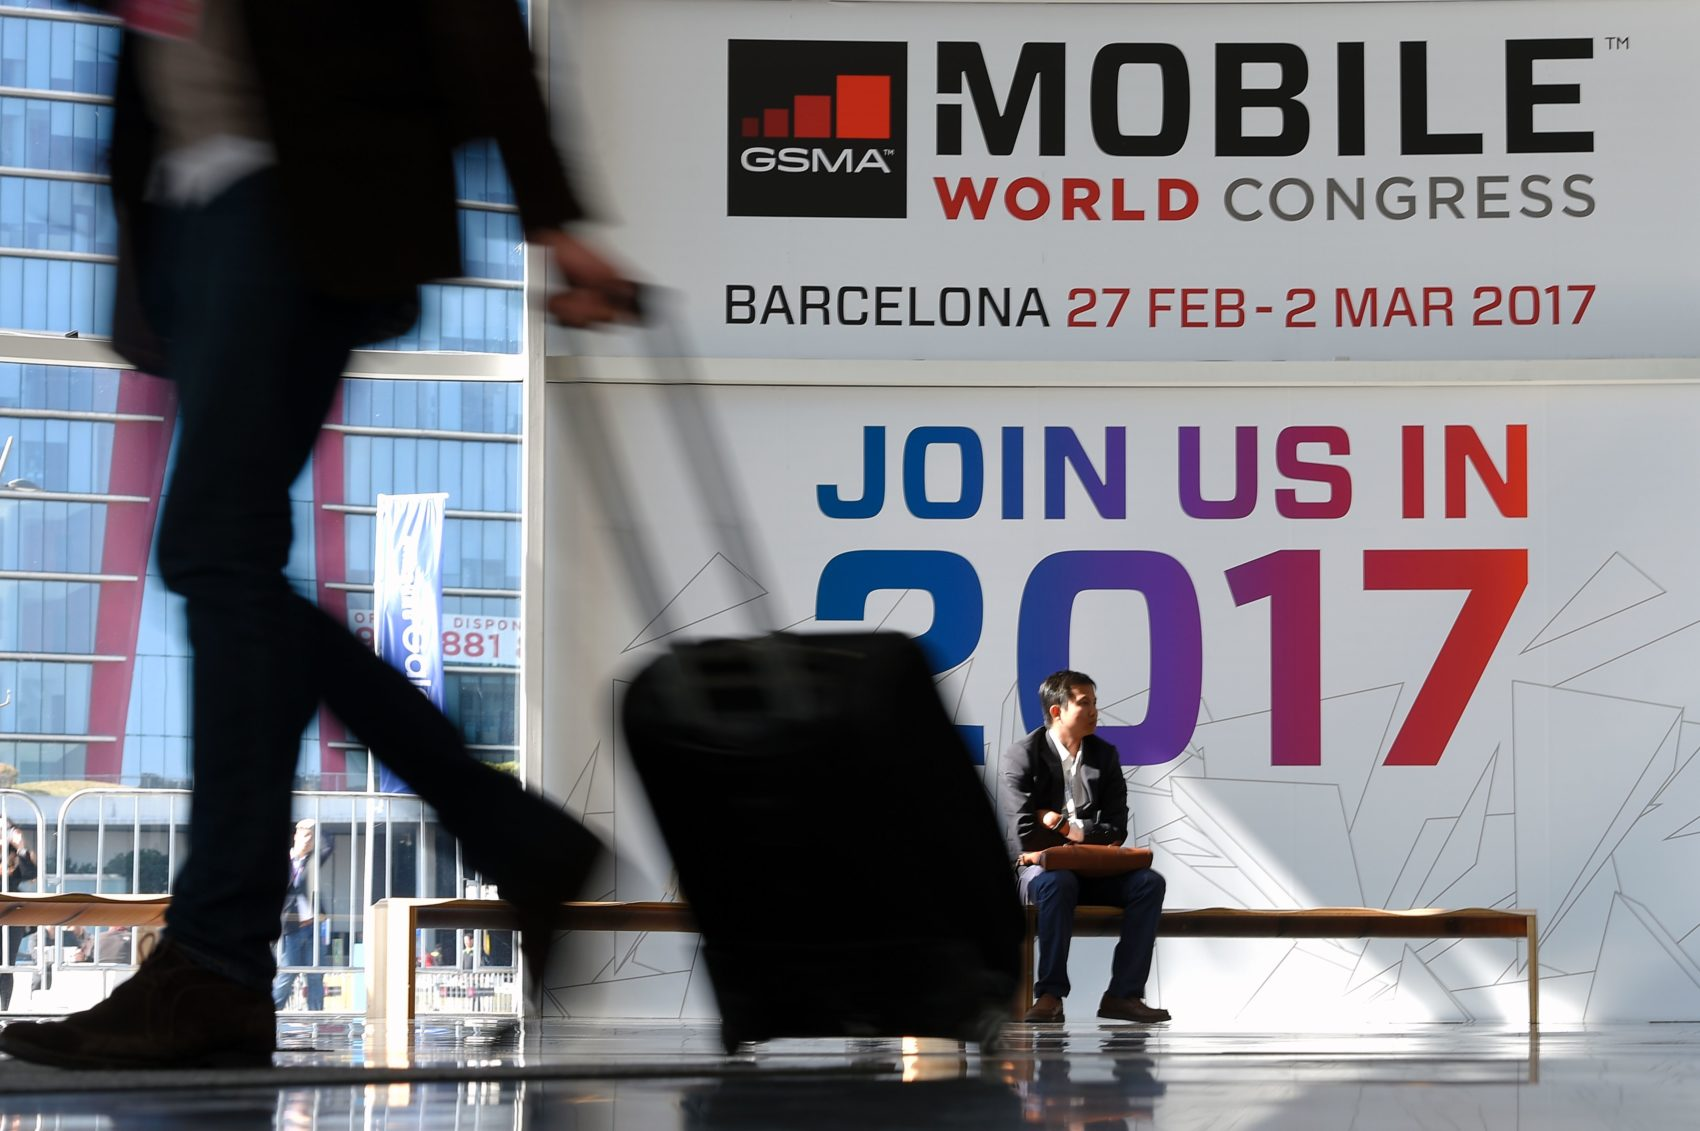 The Mobile World Congress 2017 in Barcelona